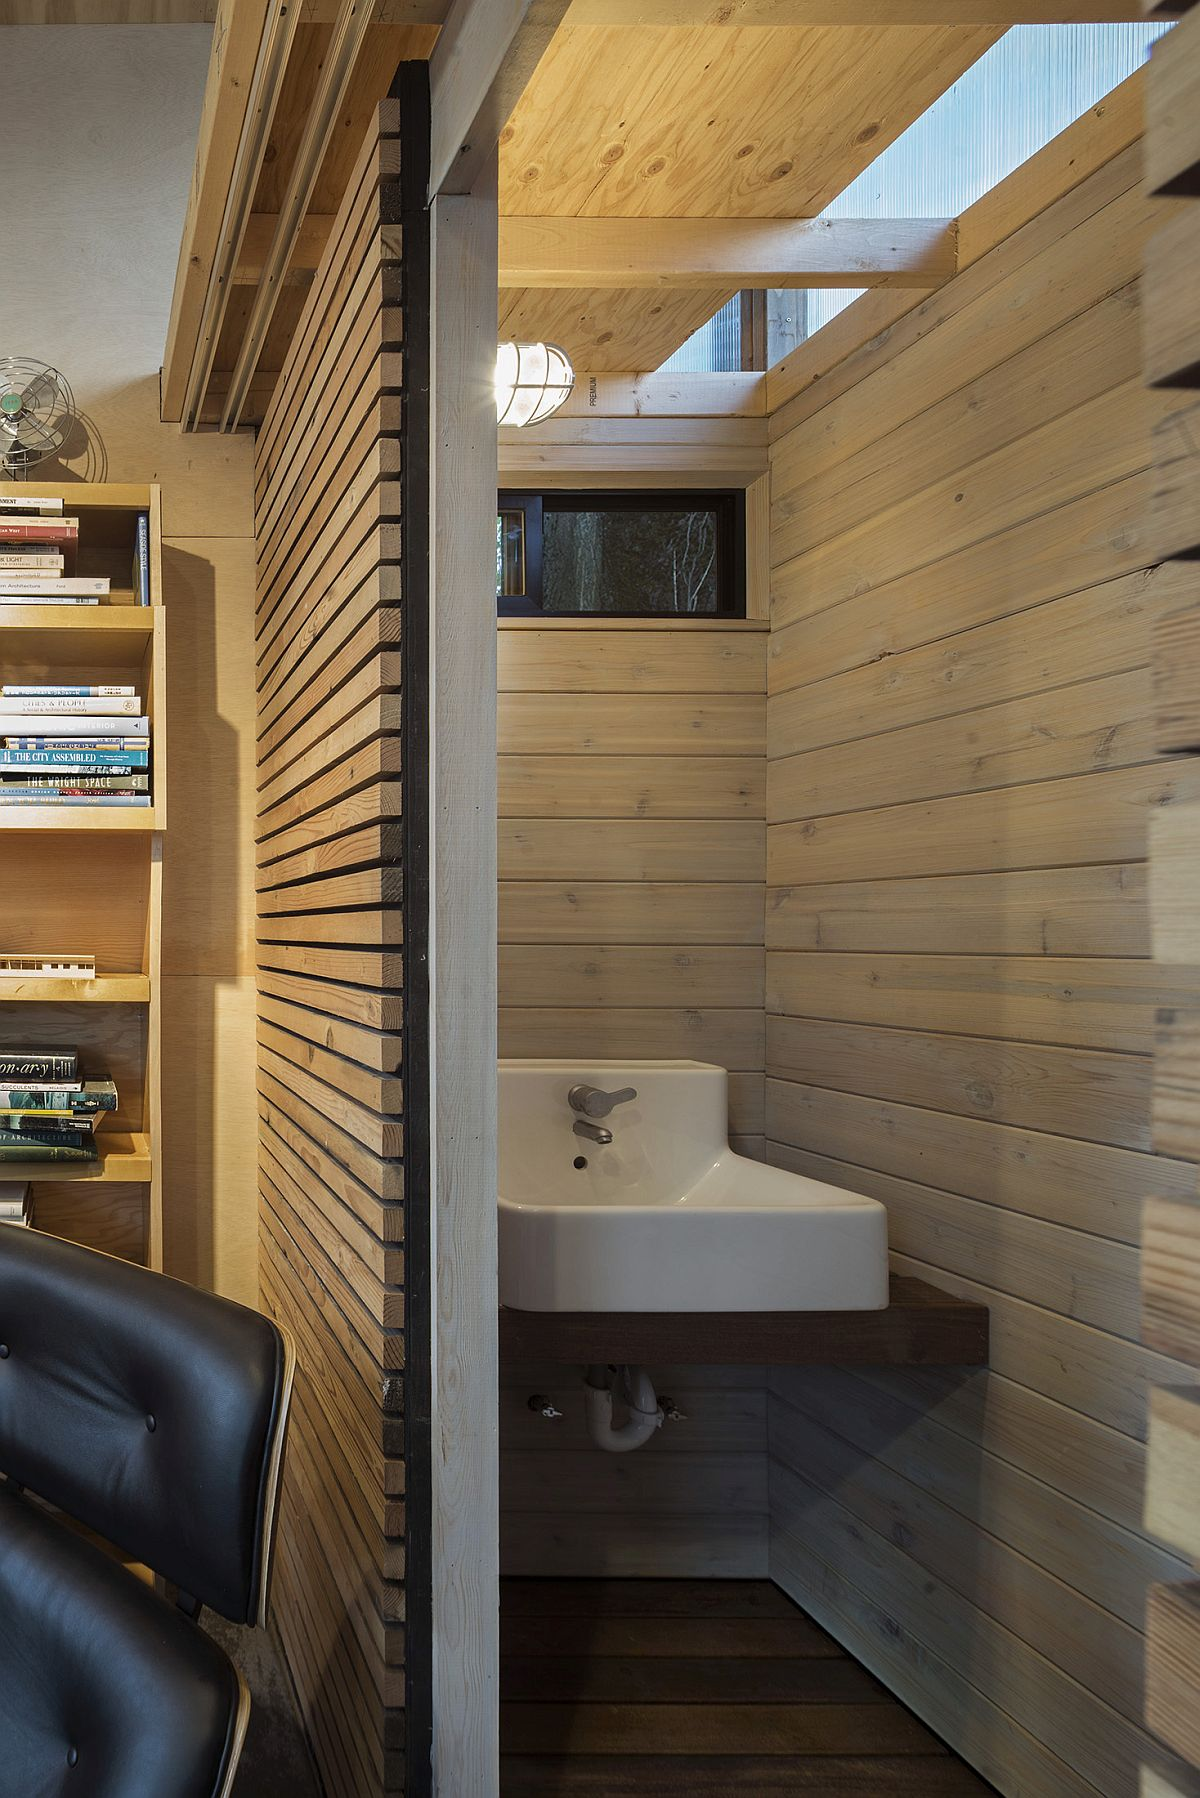 Small washbasin in the corner saves ample space